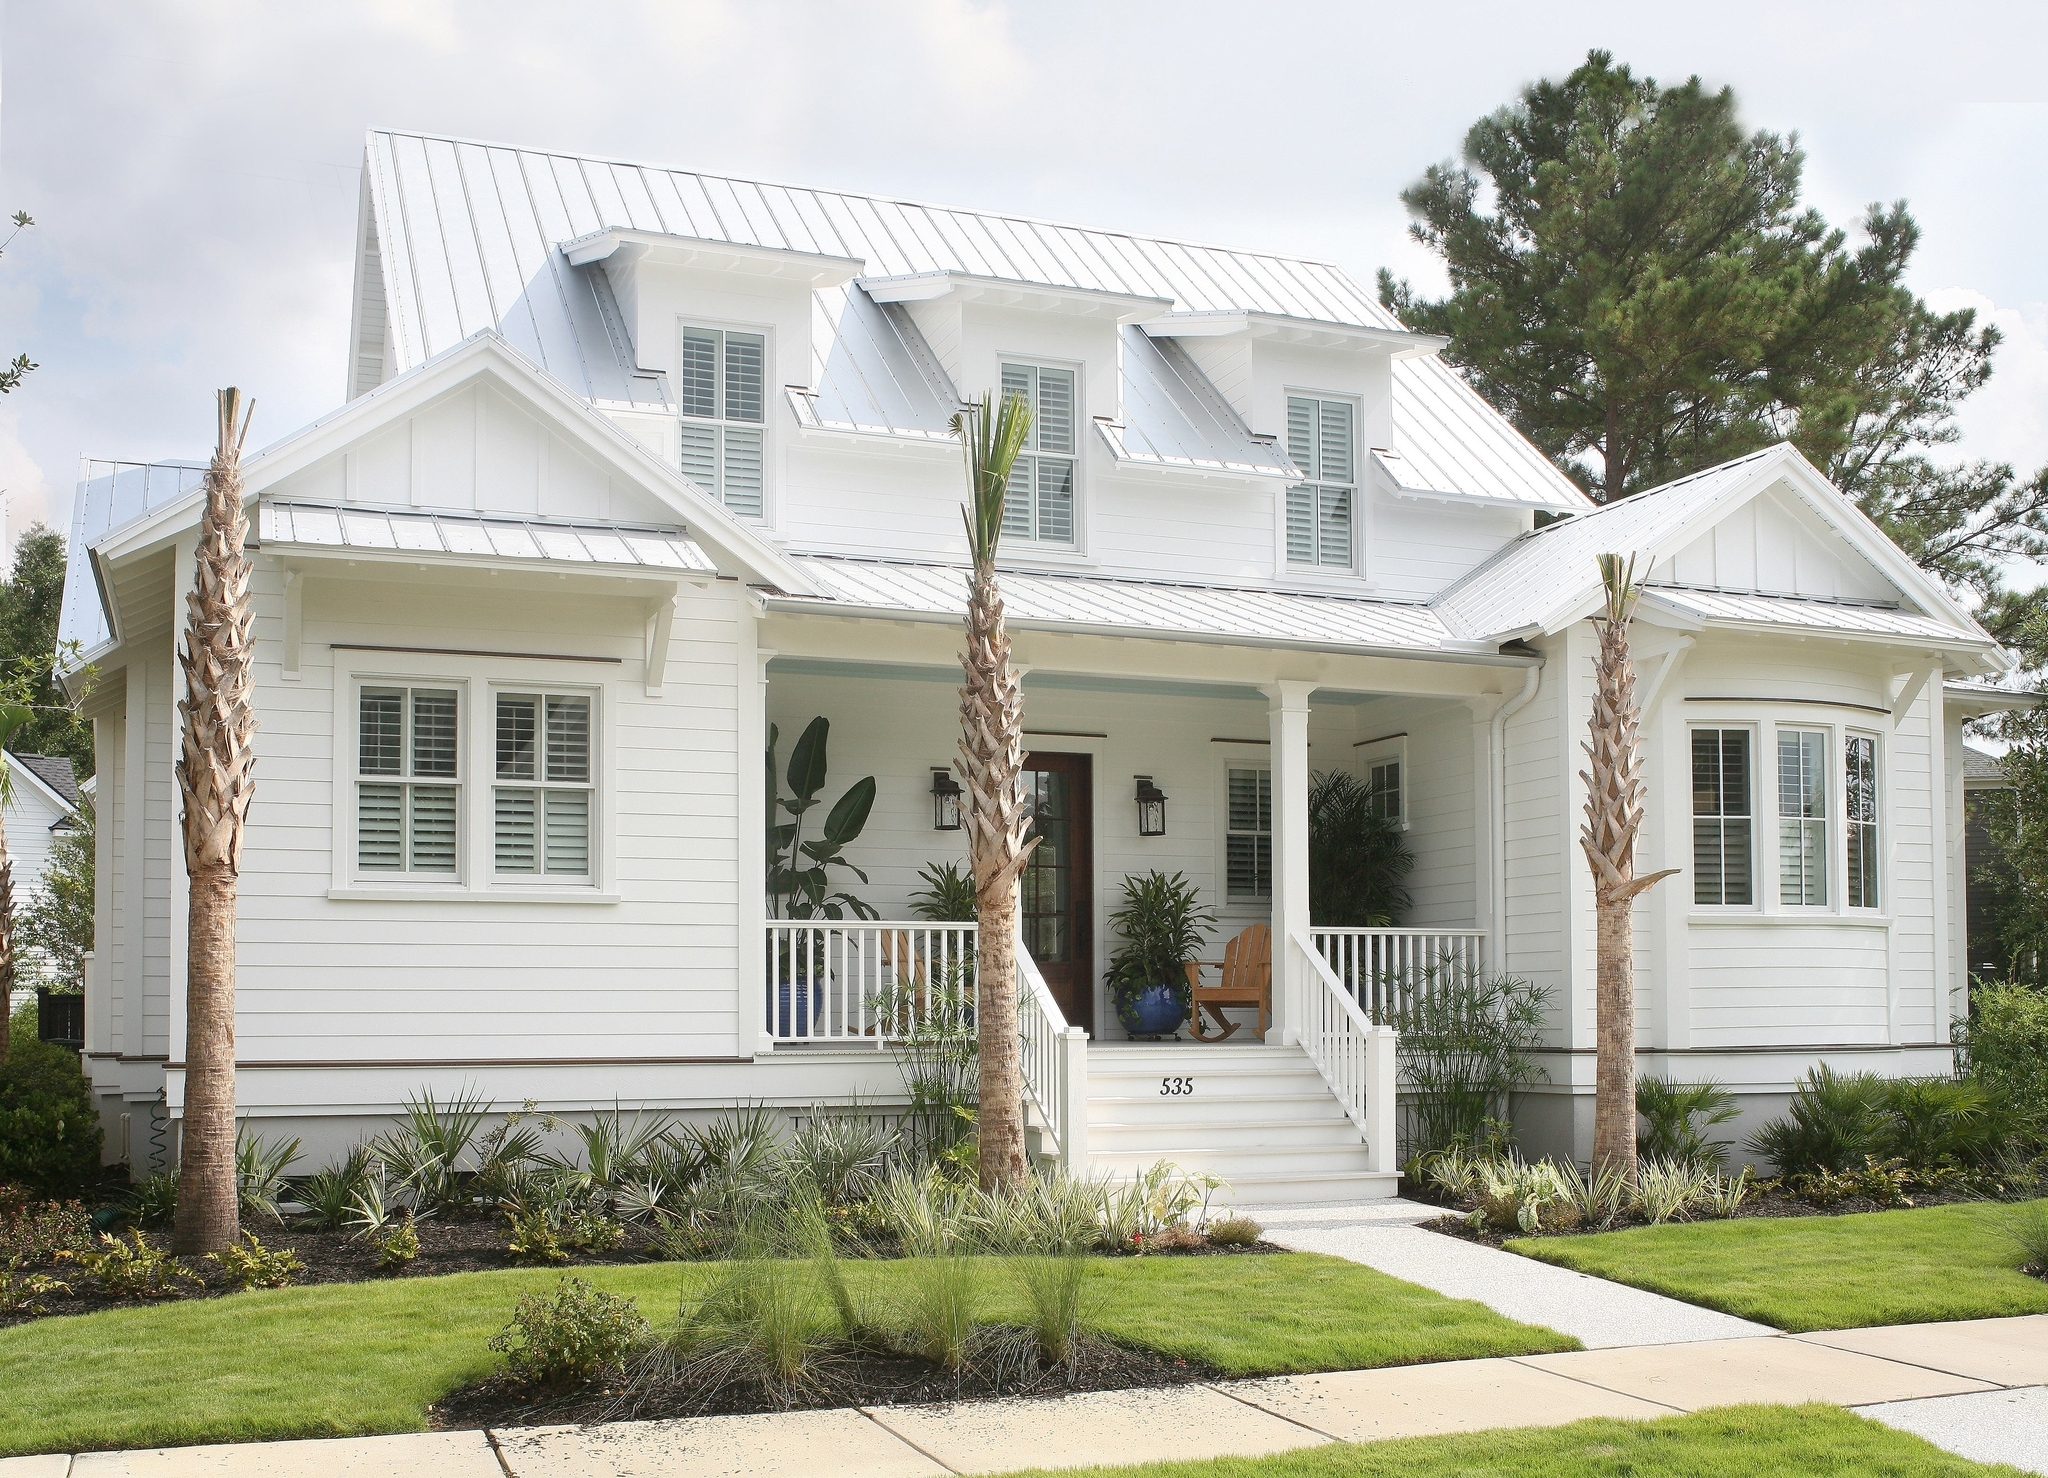 dewees breeze - Coastal House Plans